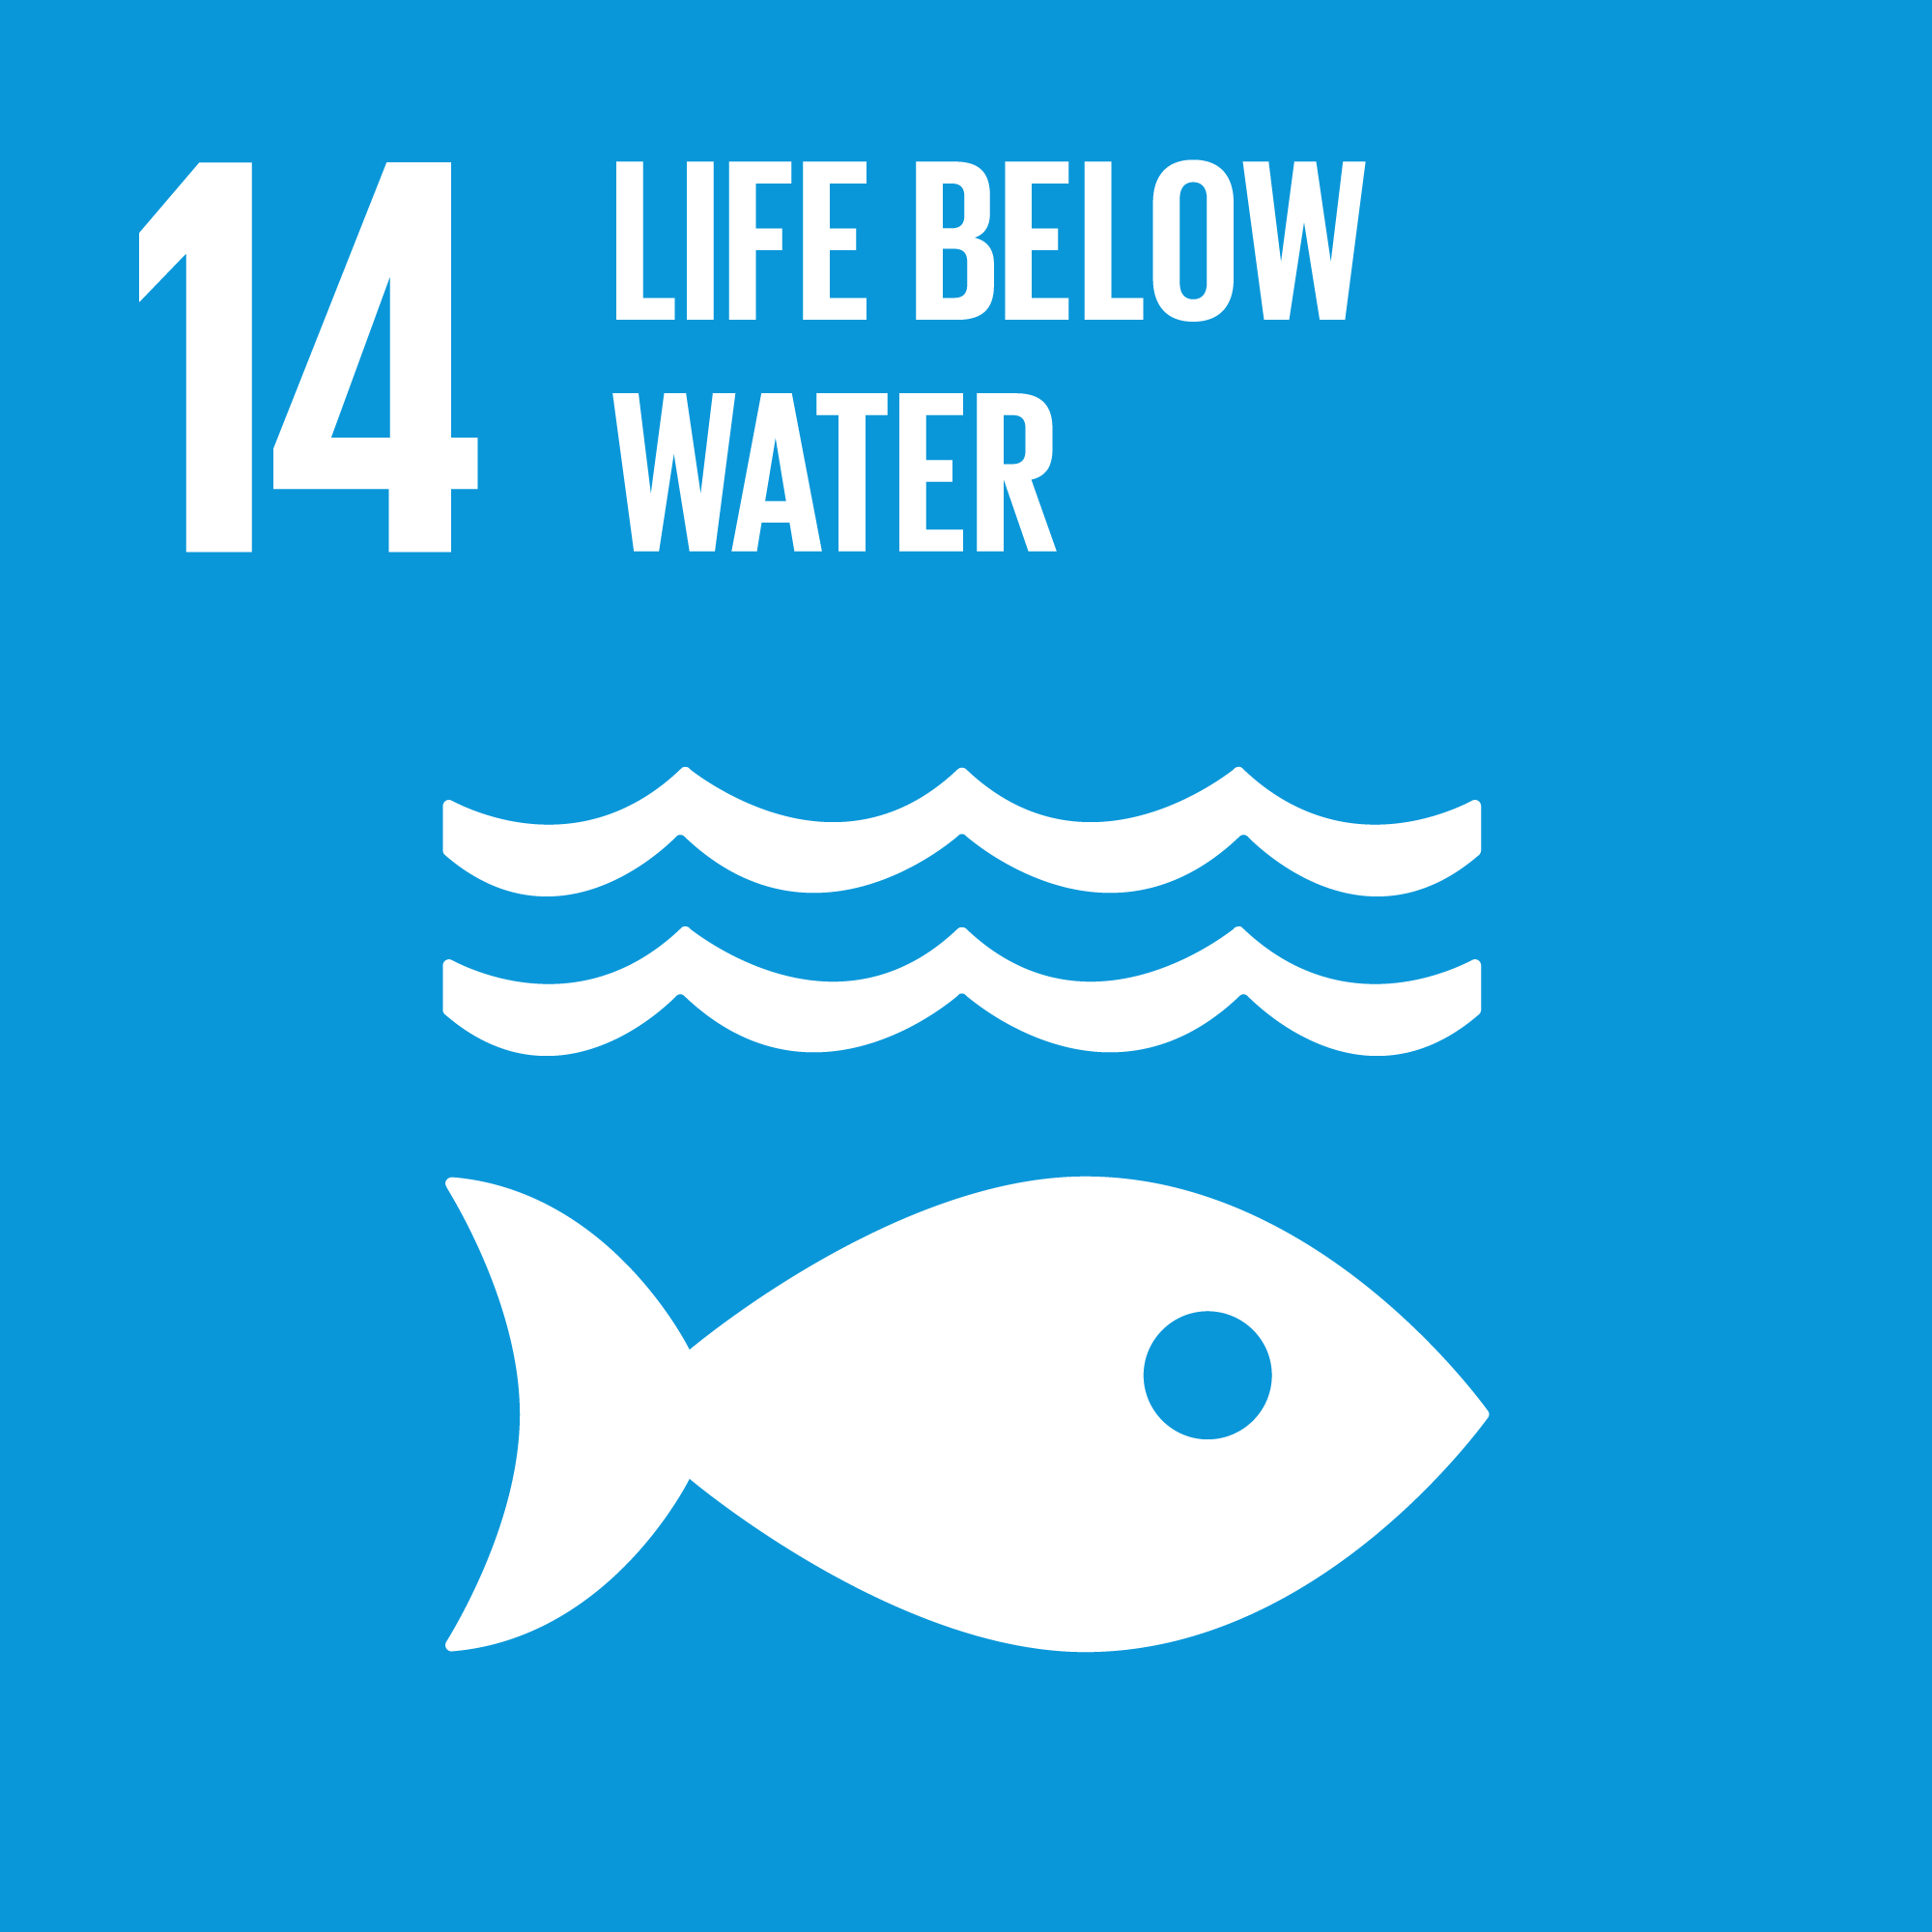 Sustainable Development Goal 14: Oceans